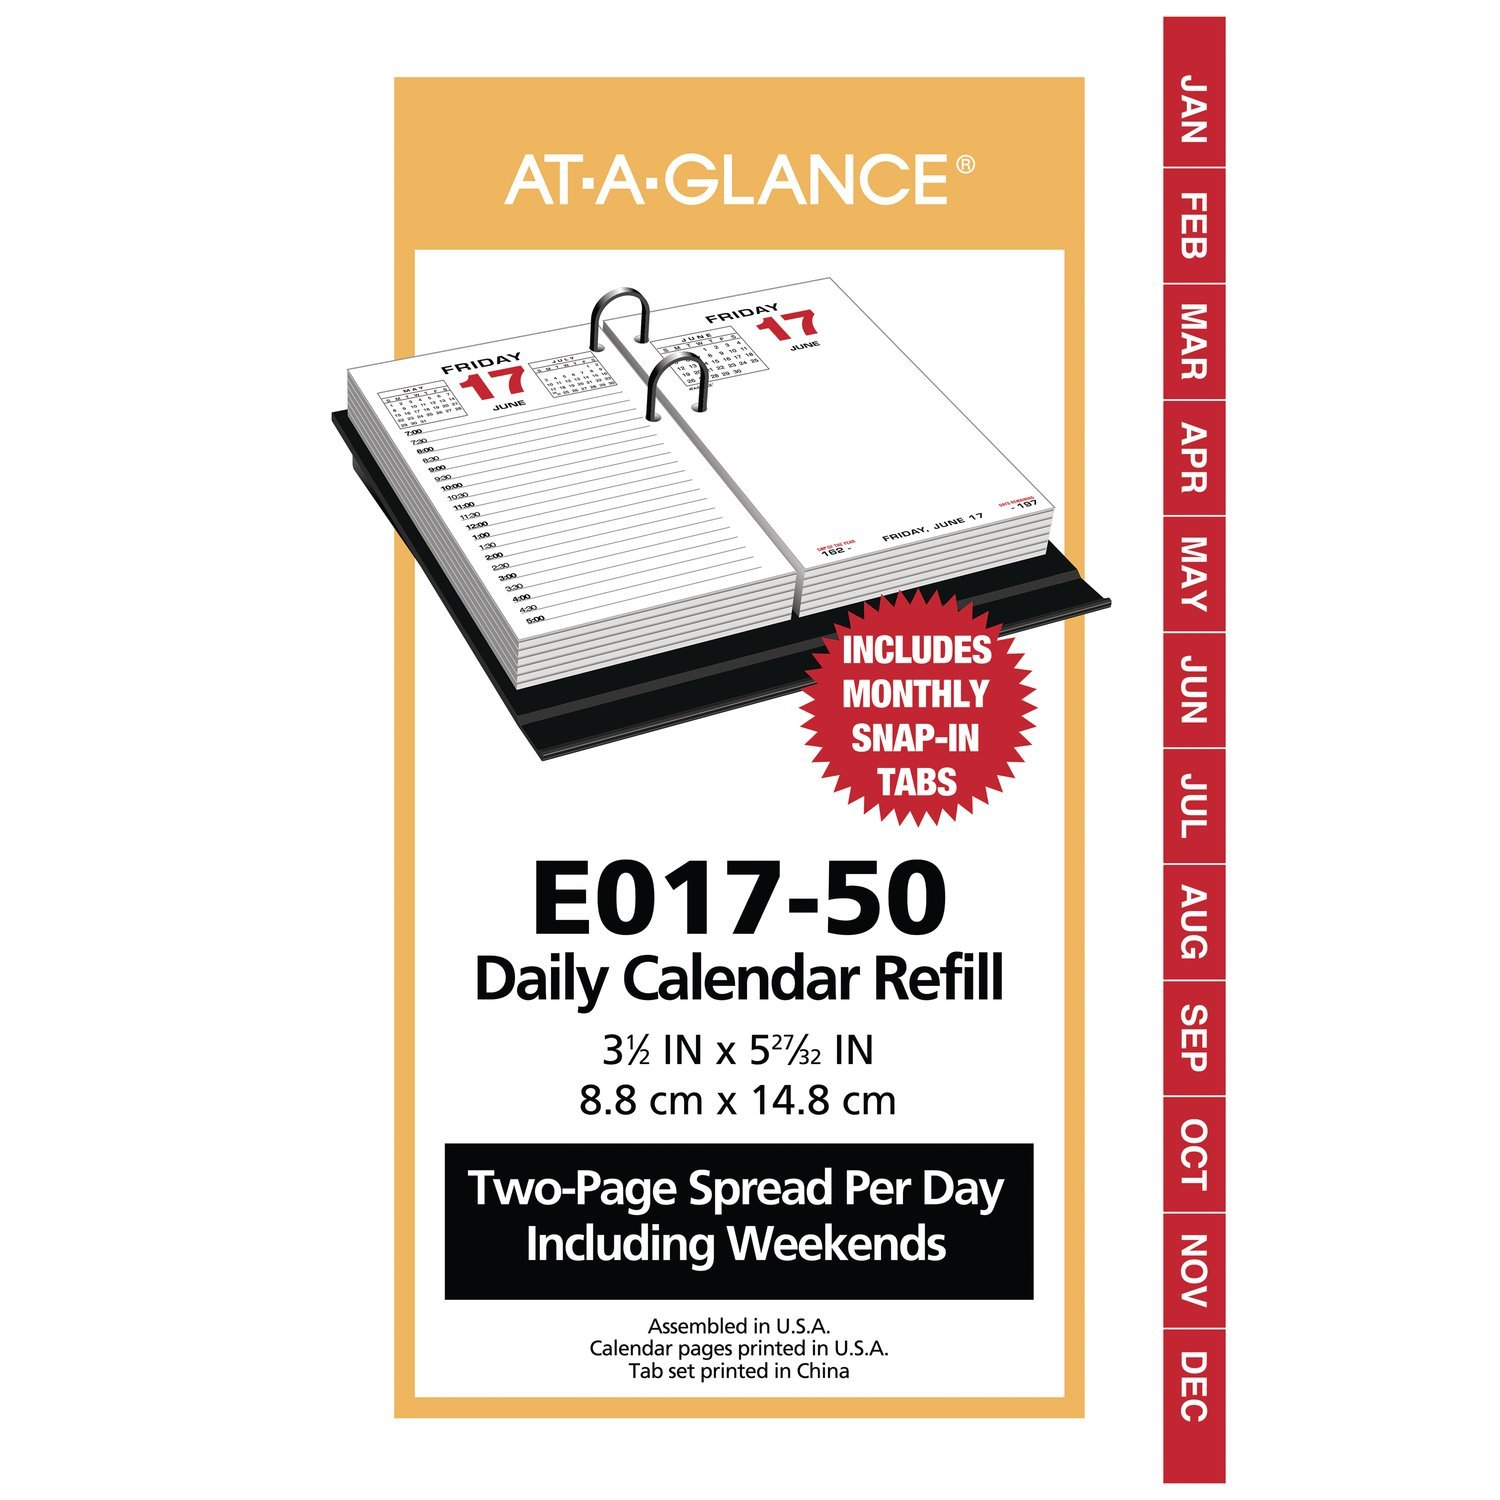 at-A-Glance Daily Desk Calendar Refill, January 2019 - December 2019, 3-1/2'' x 6'', Loose Leaf (E01750)